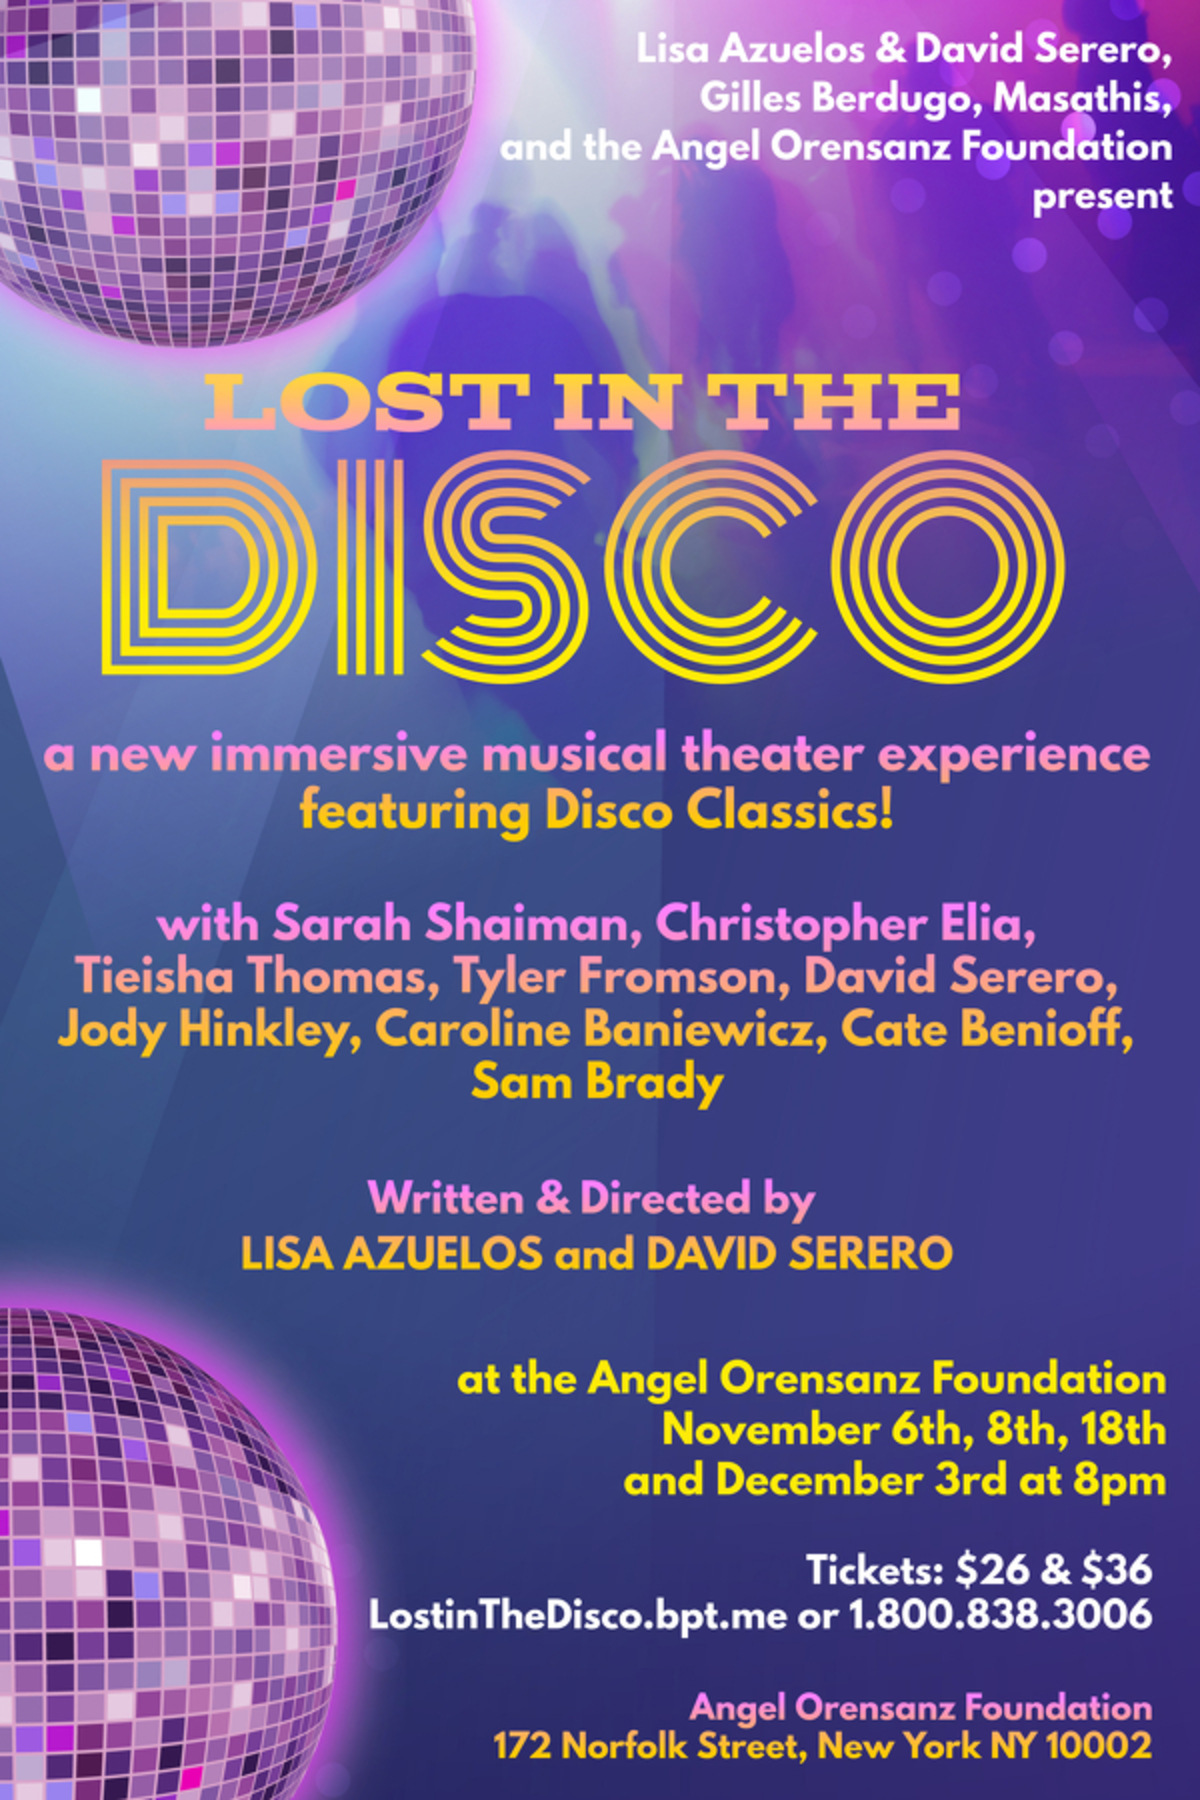 LOST IN THE DISCO